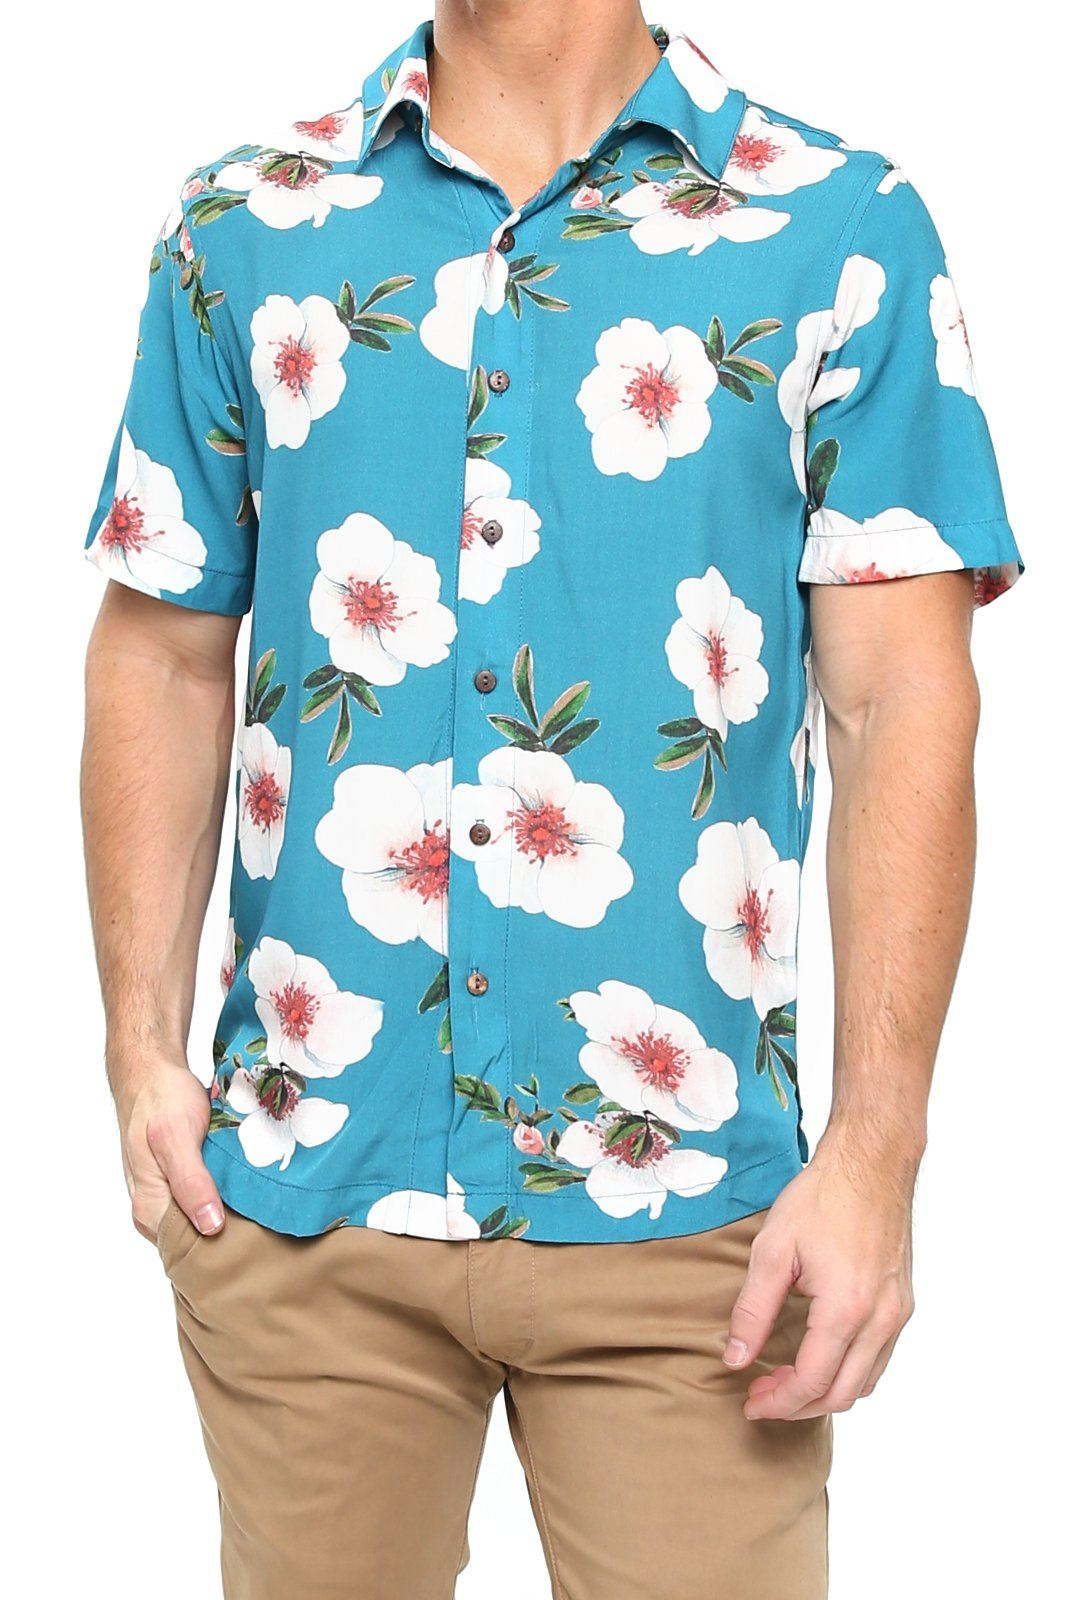 Shore Men's Camp Shirt - Teal Floral - Shore